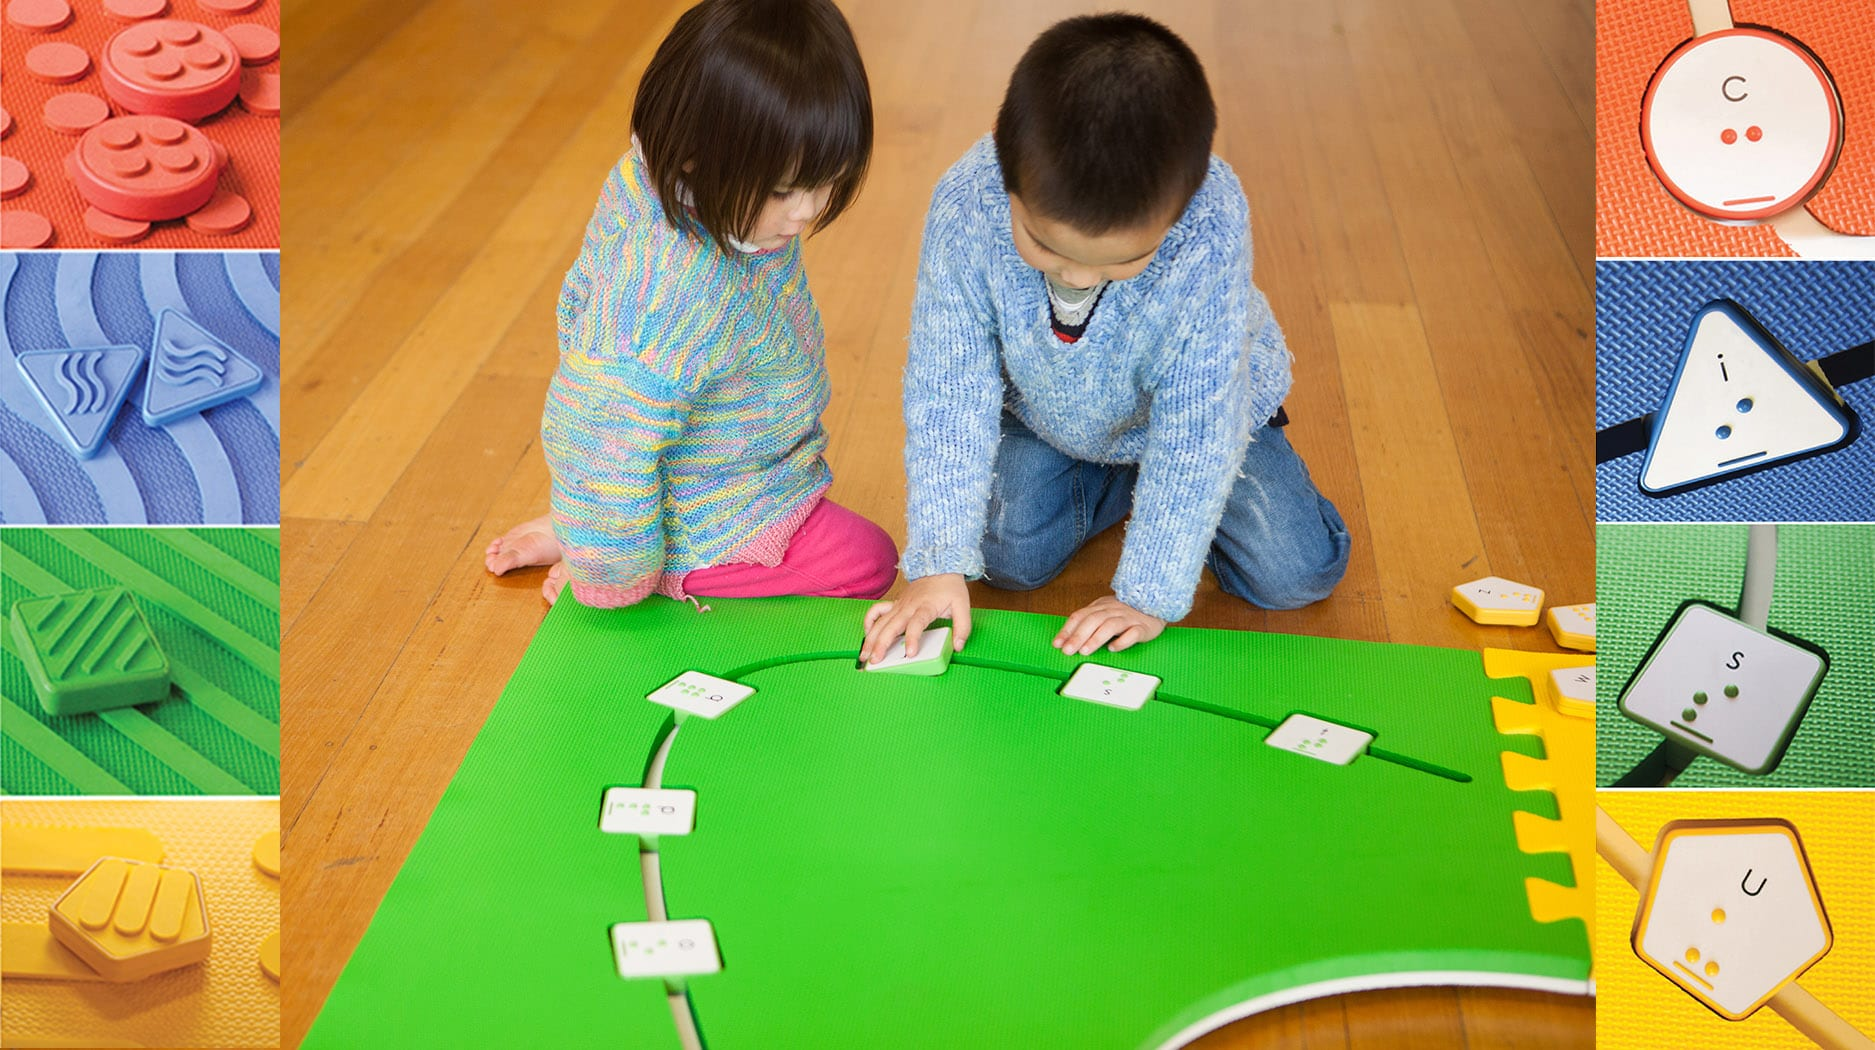 Photo shows two young children place square tiles in the cutouts of the green mat. Along the side vertically are images of red, blue, green, and yellow mats with matching tiles.